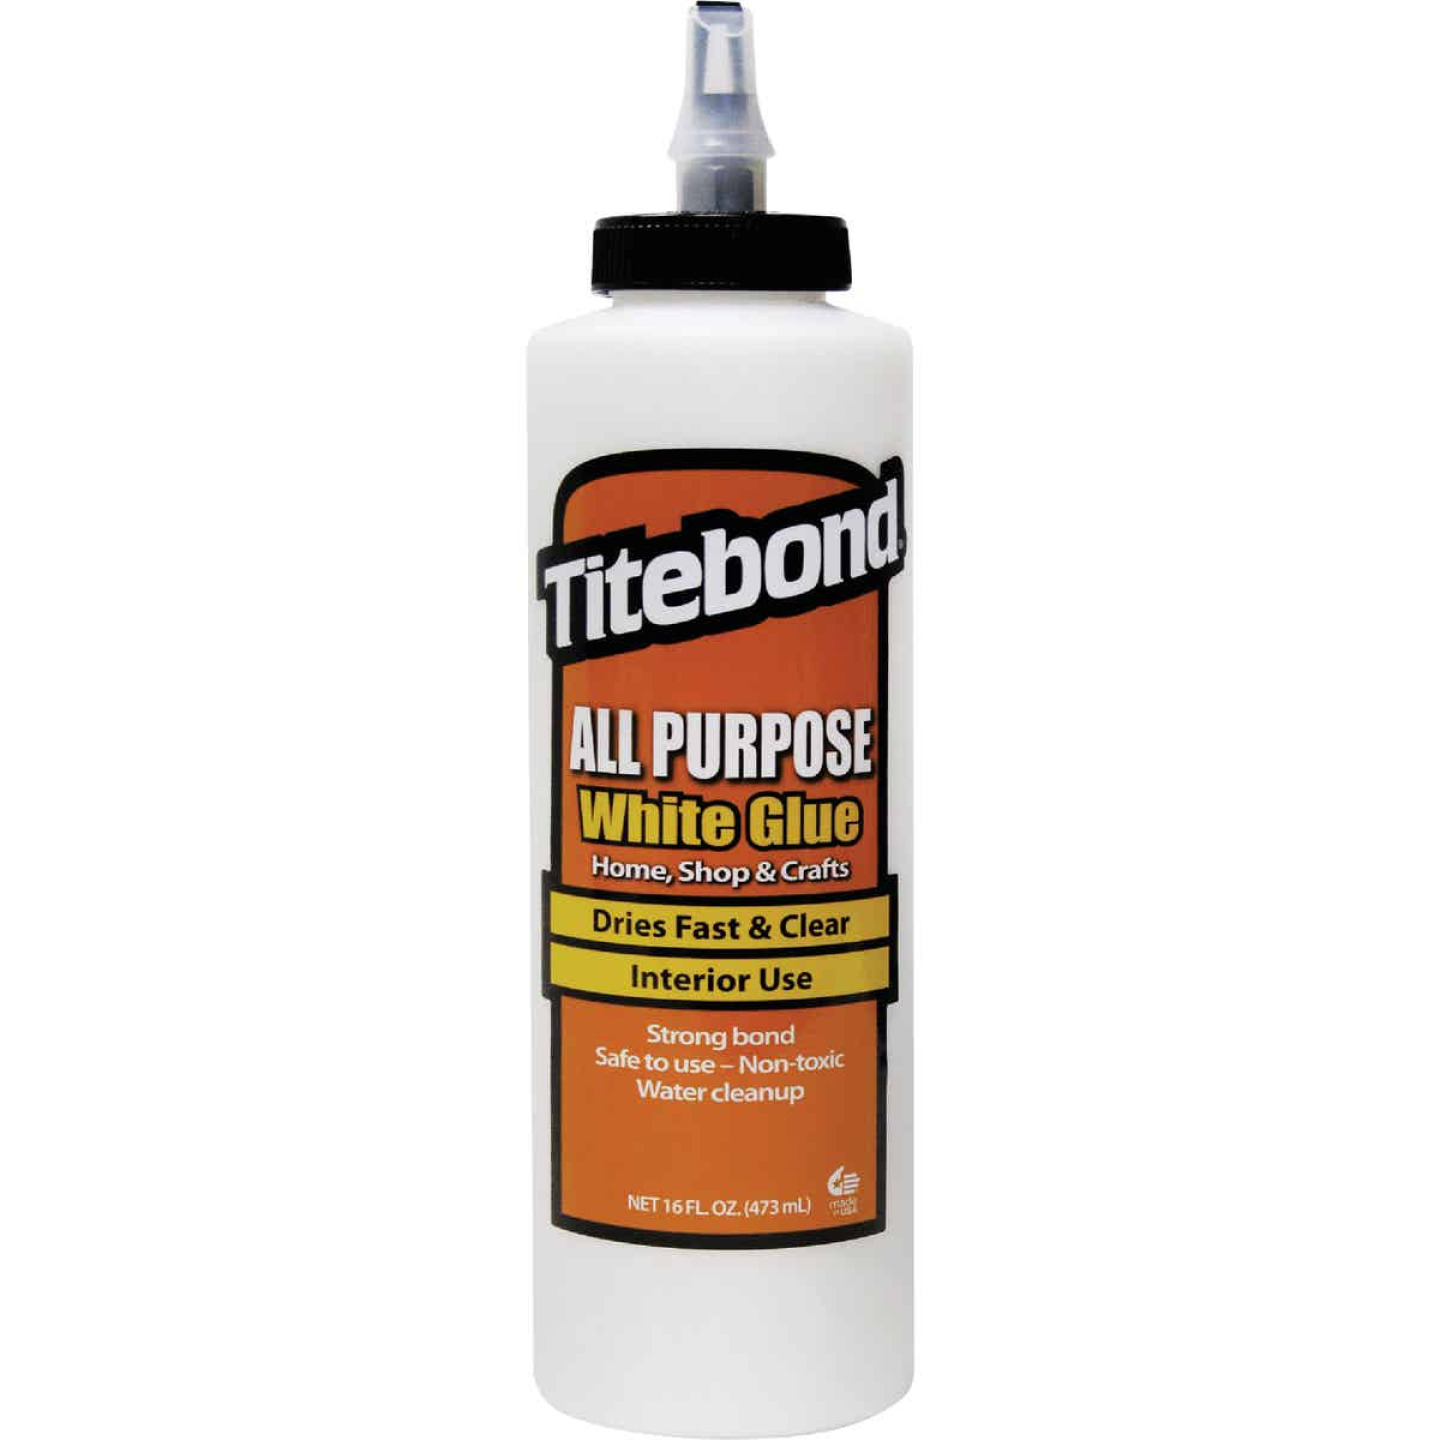 Titebond 16 Oz. White All-Purpose Glue Image 1